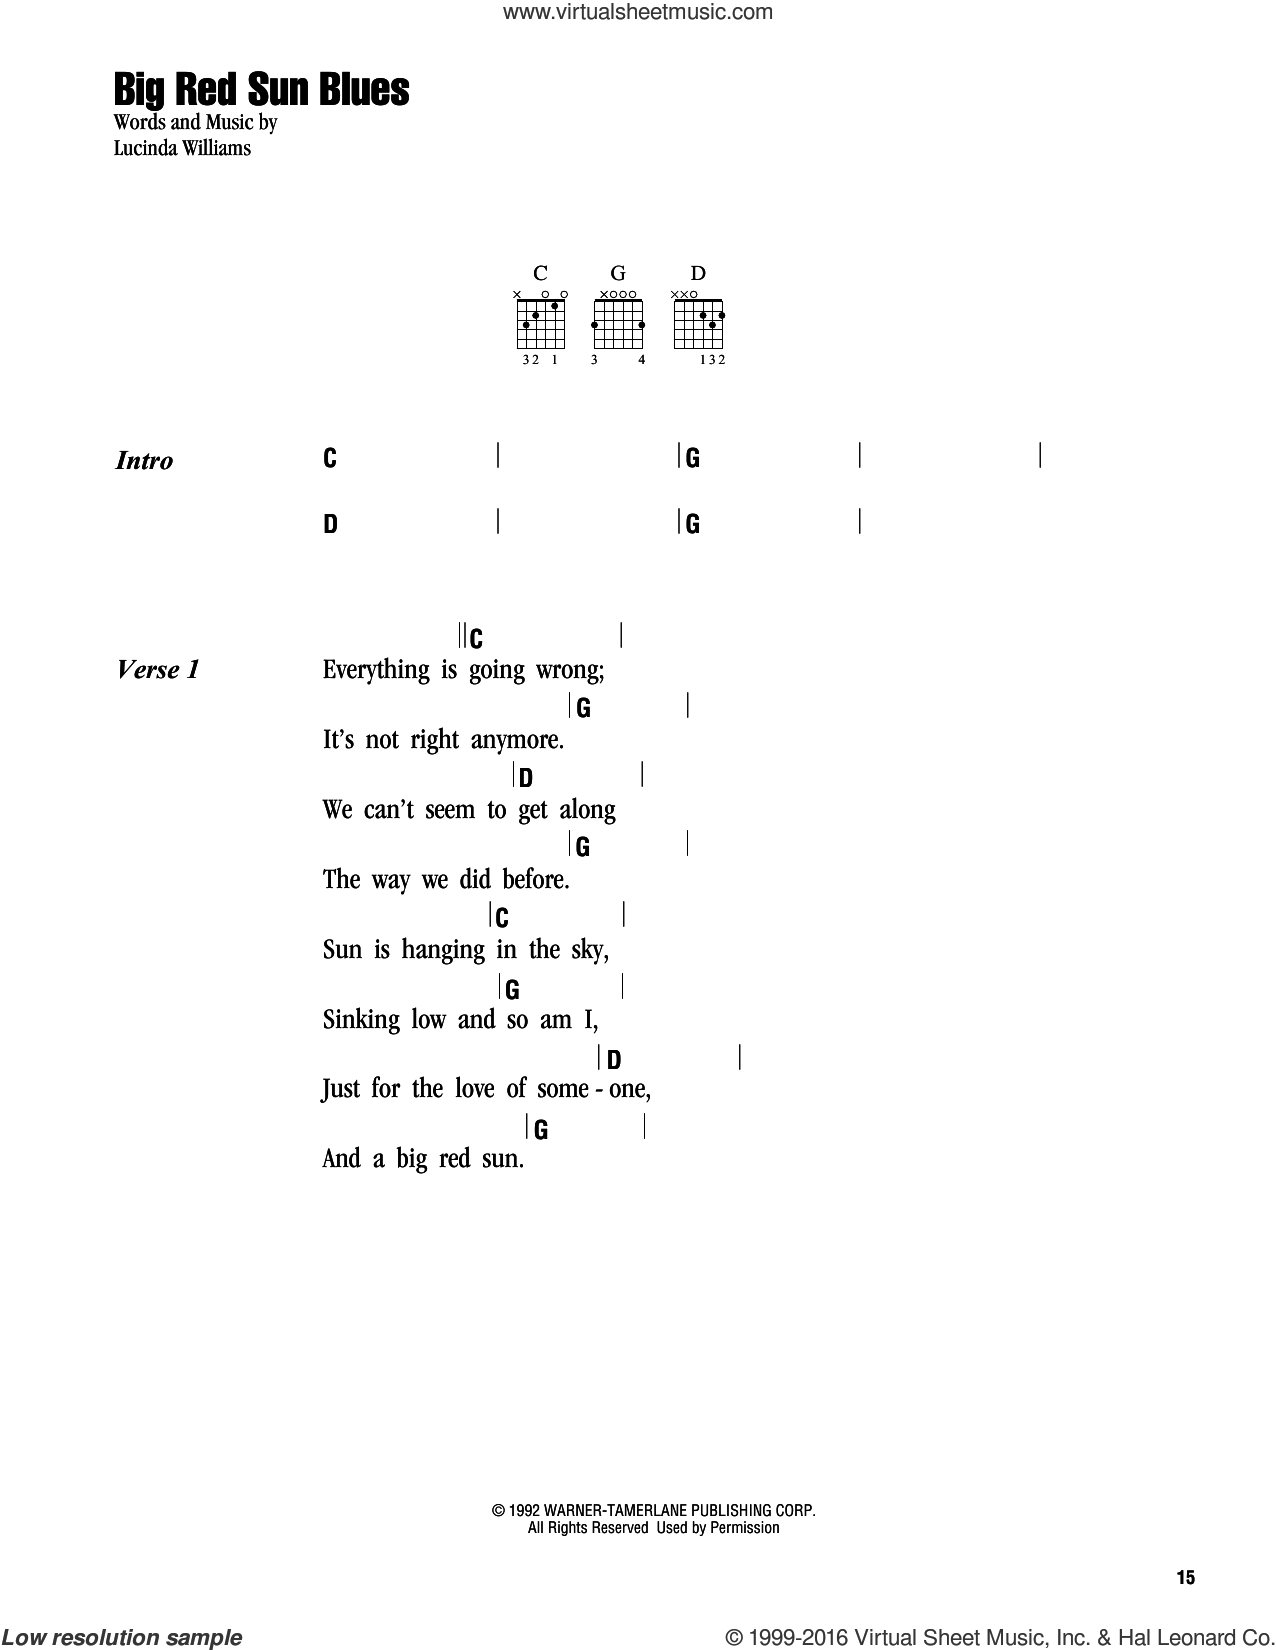 Big Red Sun Blues sheet music for guitar (chords) by Lucinda Williams. Score Image Preview.